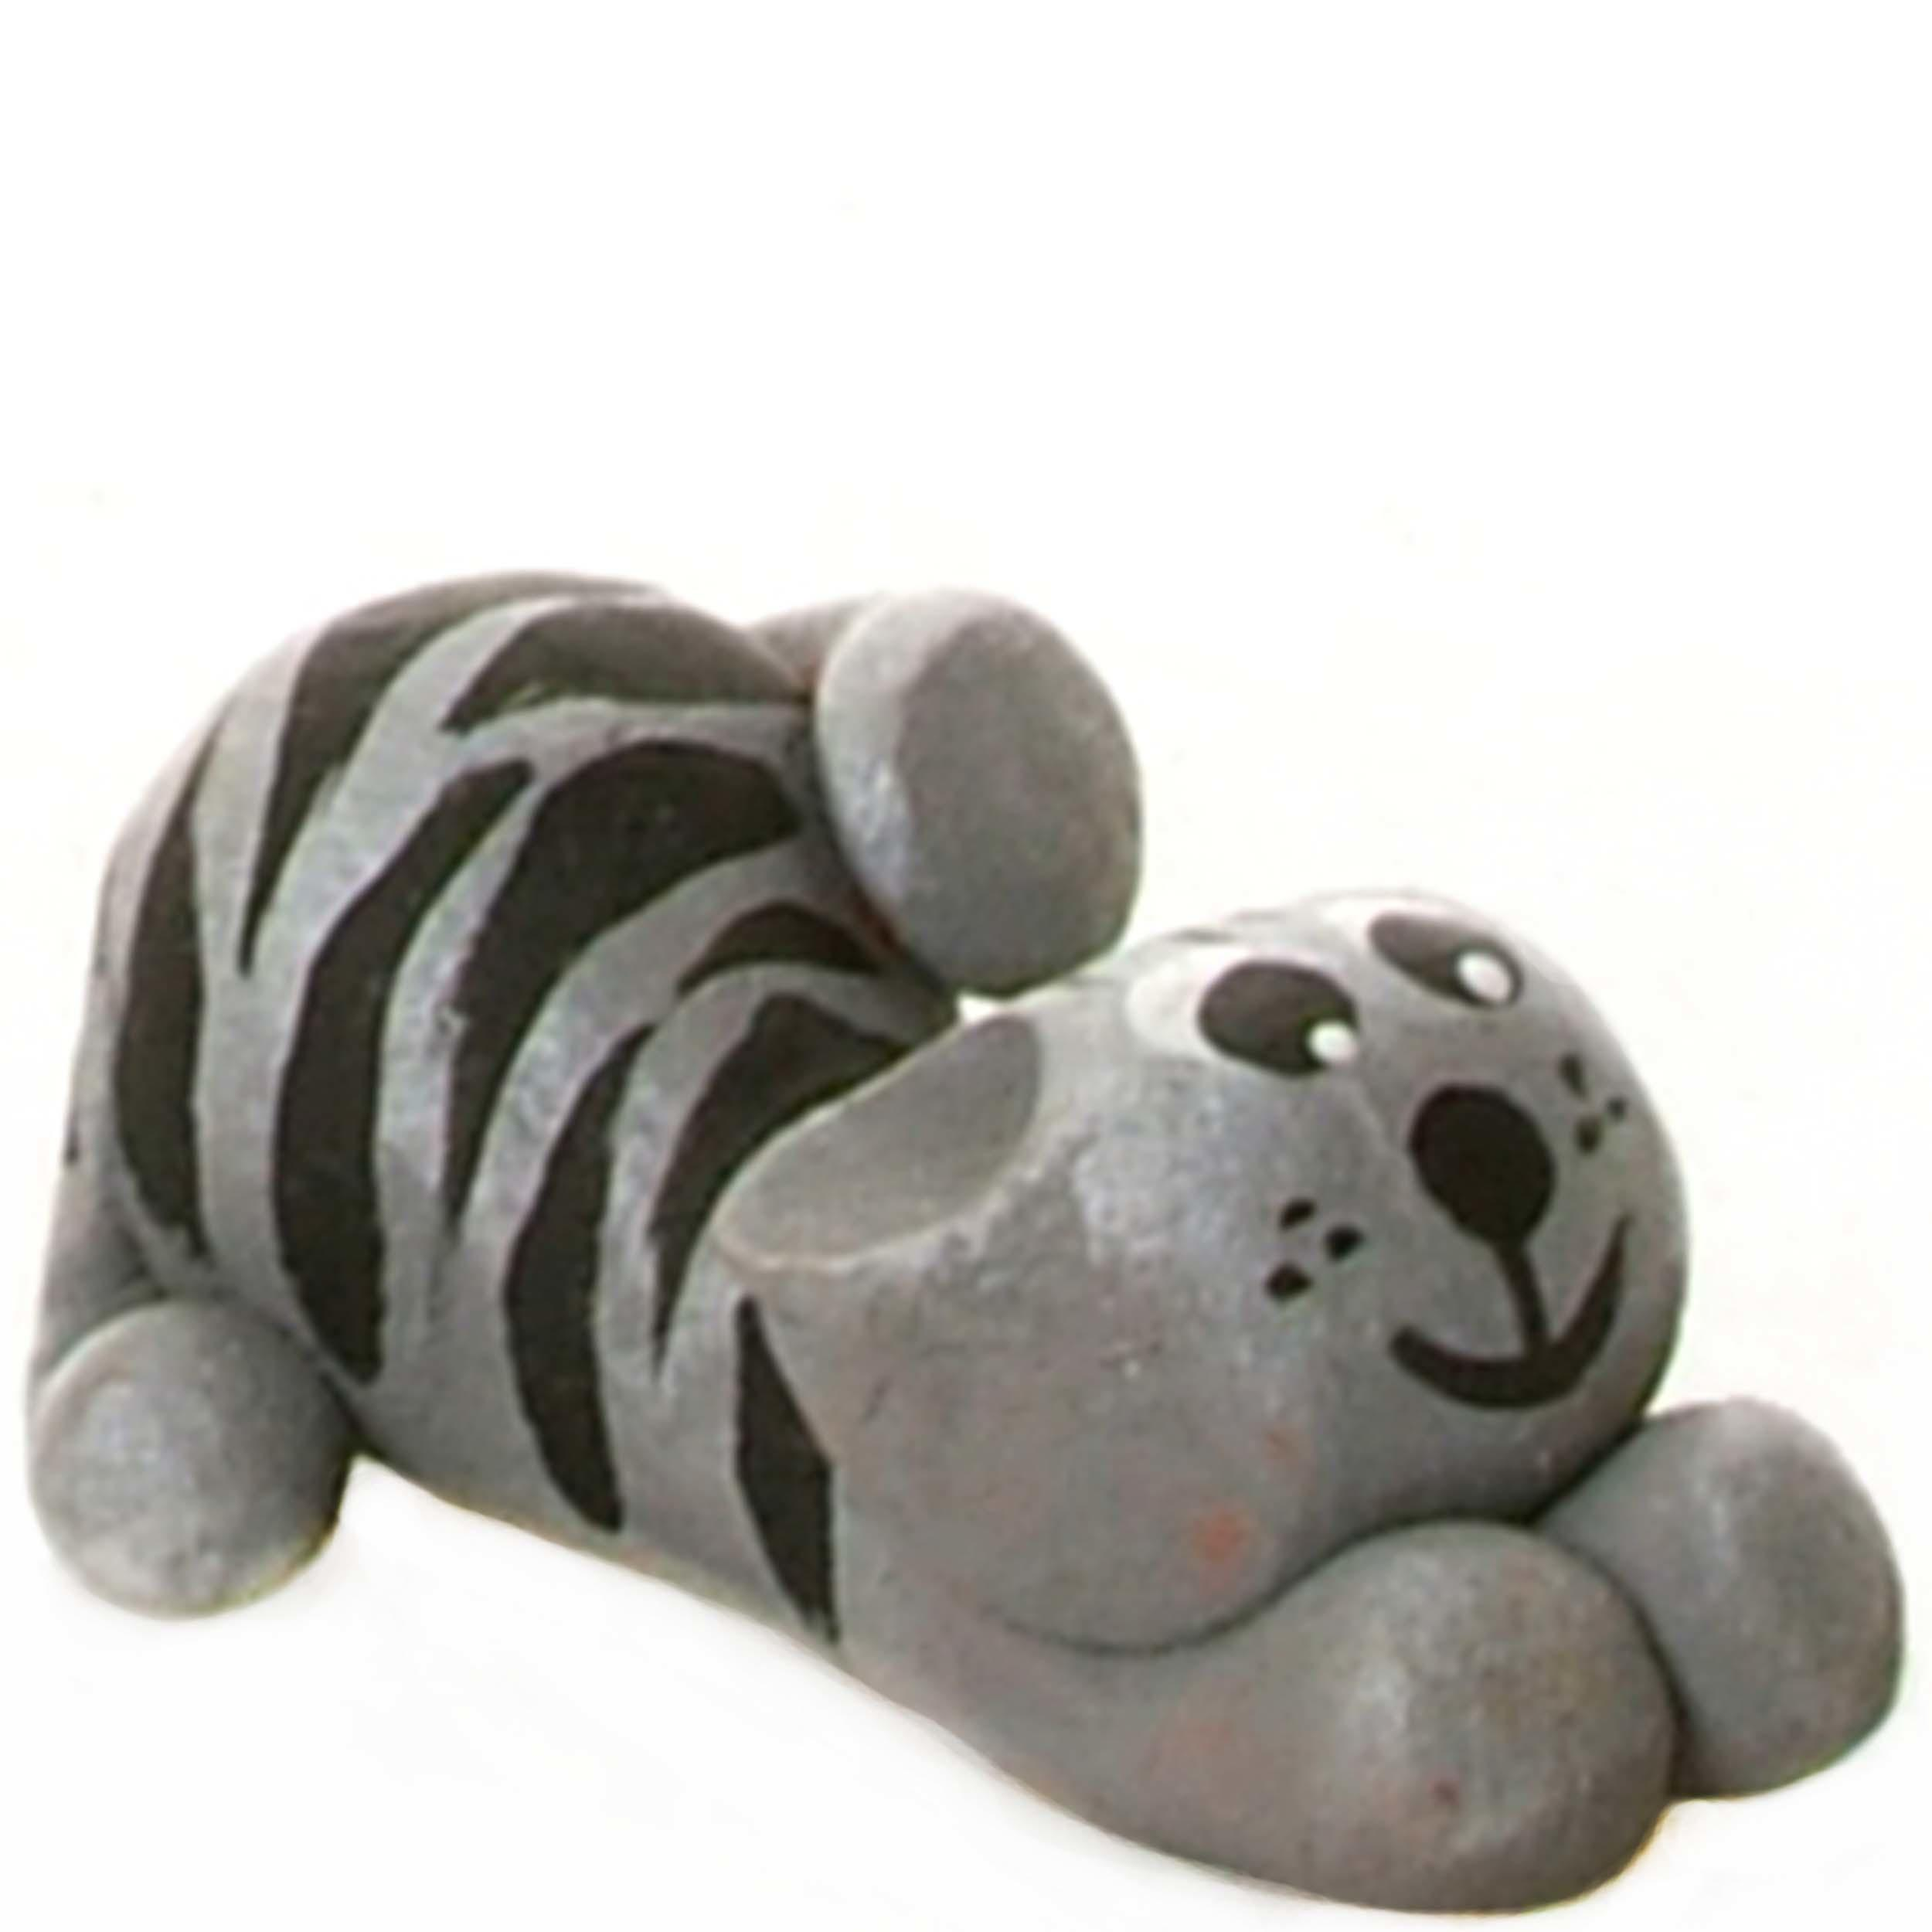 Pet in a Box Ceramic Animal Gift for Kids Grey Tabby Cat